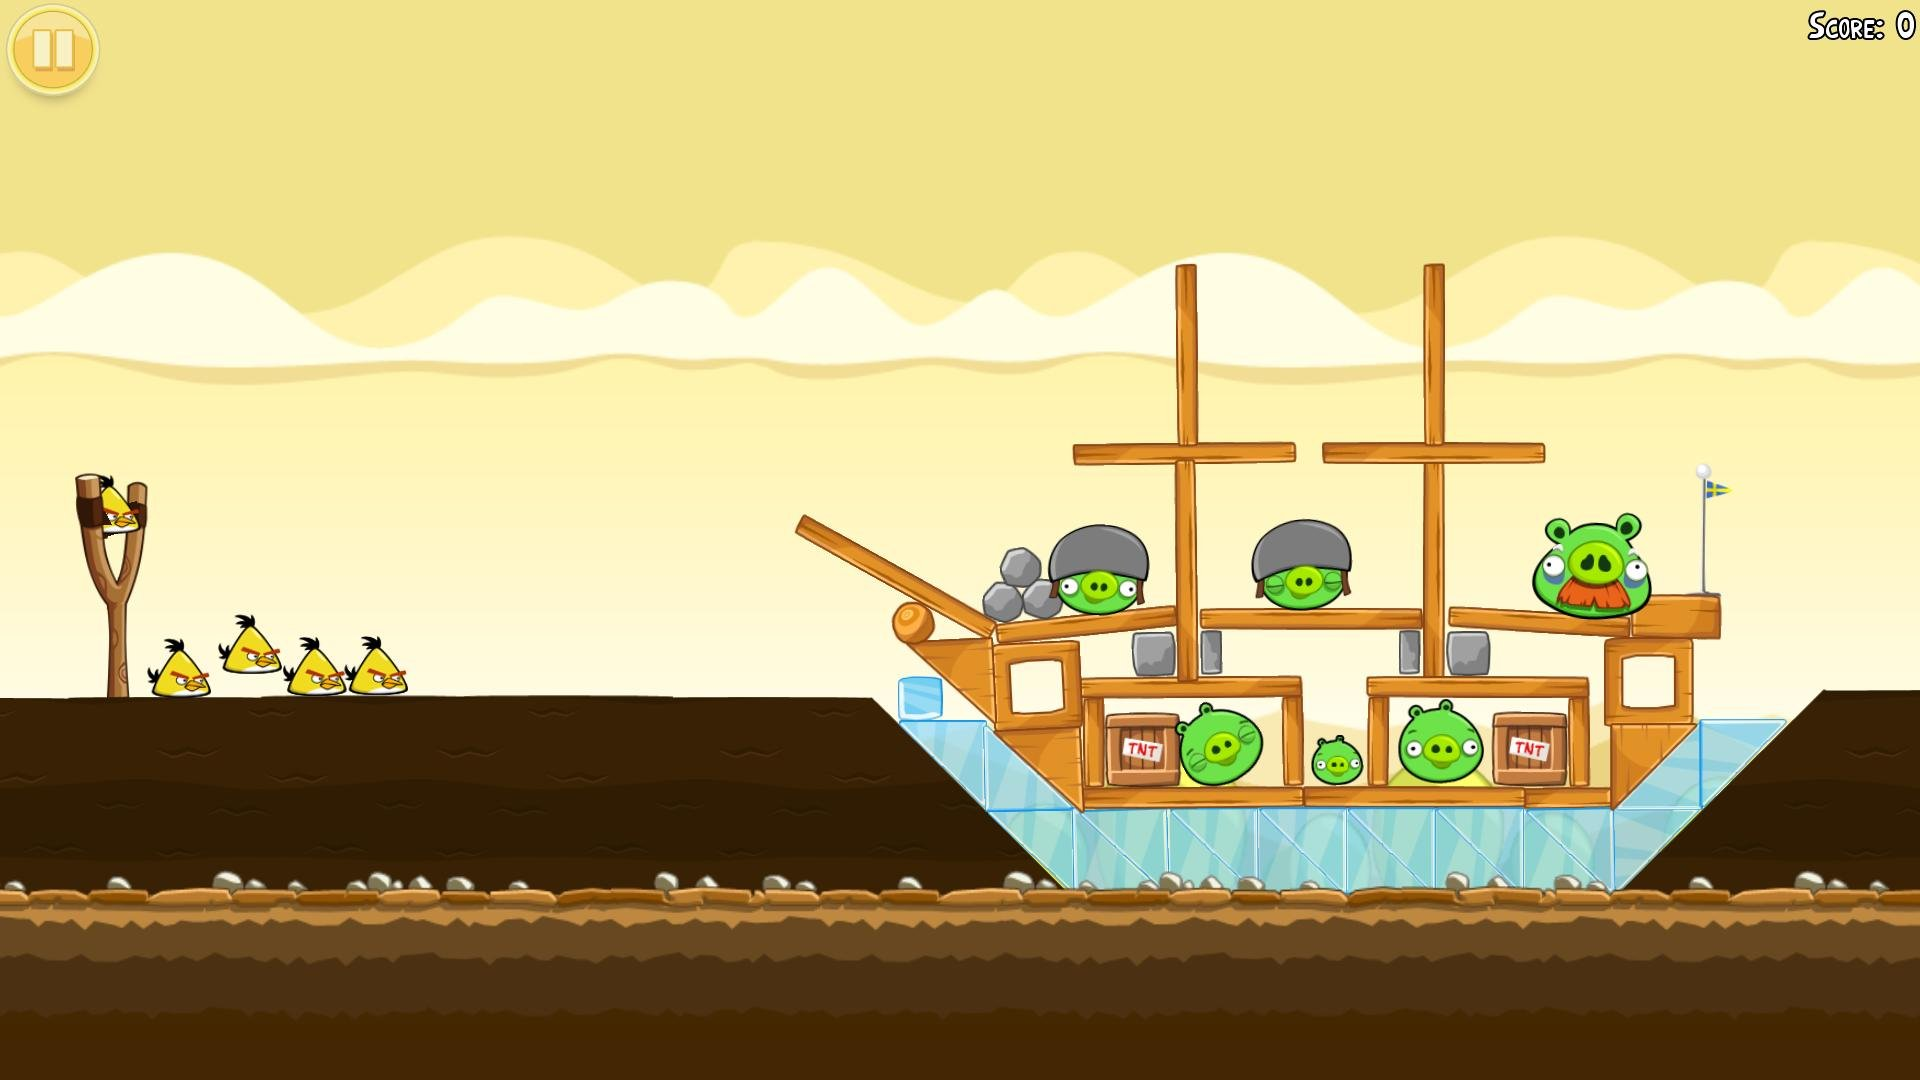 angry birds level 5 Popular Mobile Apps With Disturbing Implications